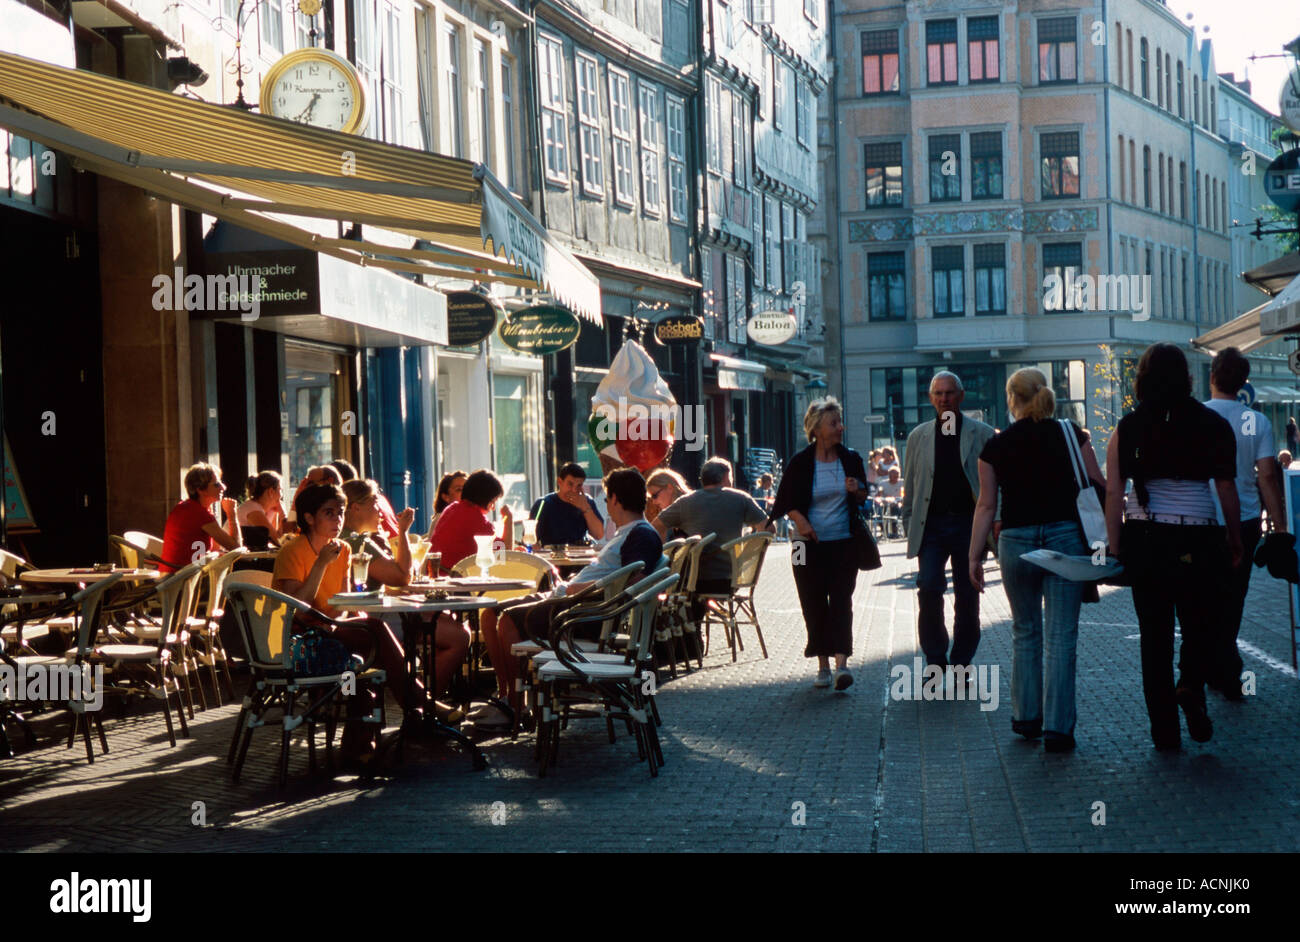 Pavement cafe / Hanover  - Stock Image